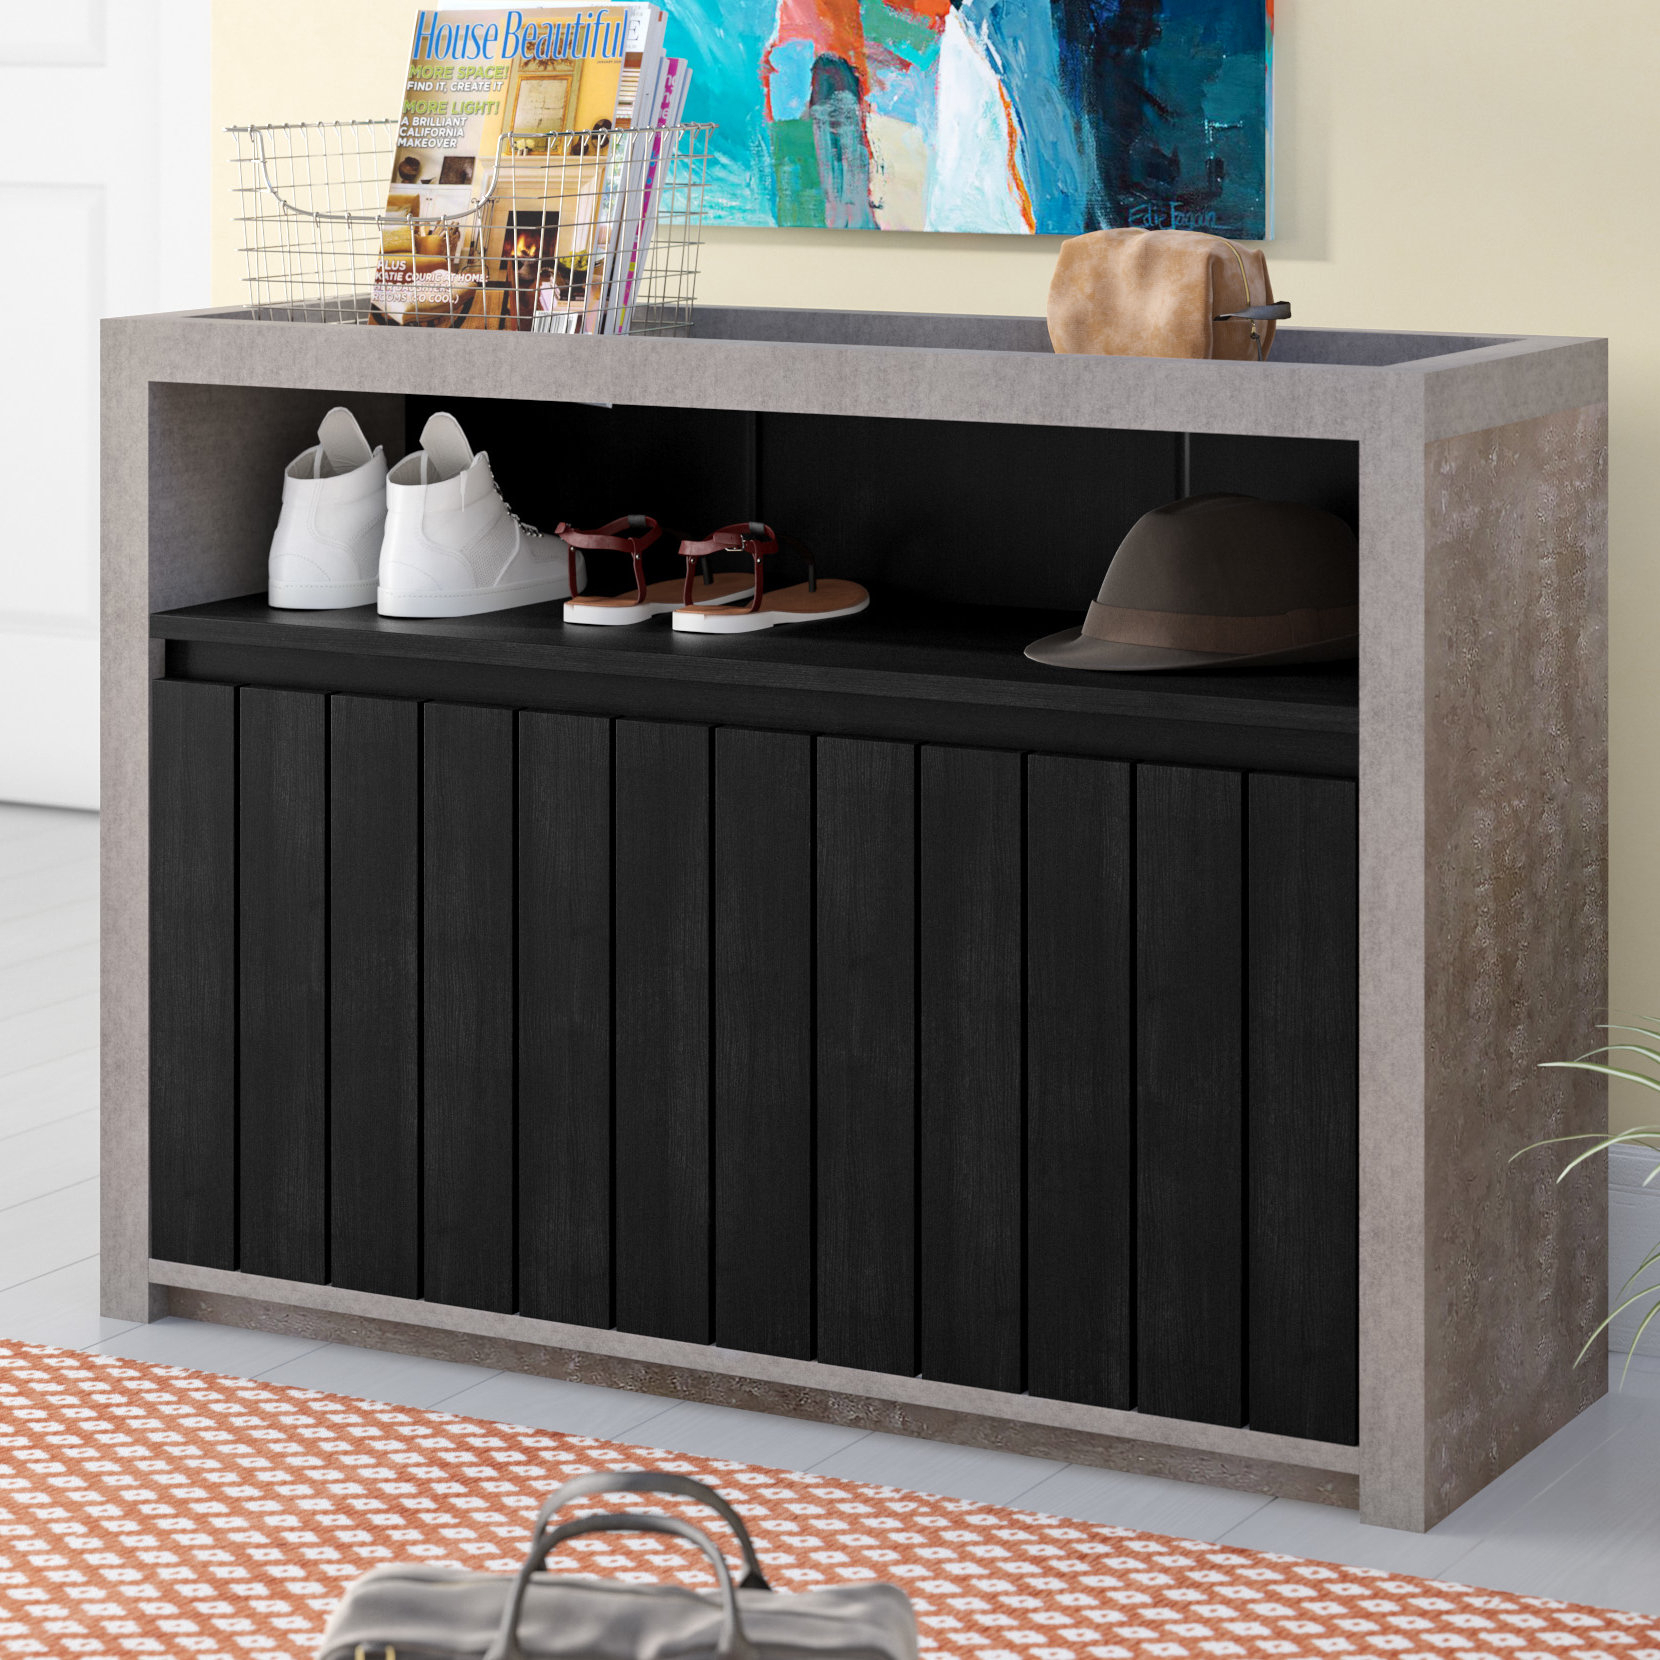 Entryway Buffet | Wayfair with Industrial Concrete-Like Buffets (Image 19 of 30)